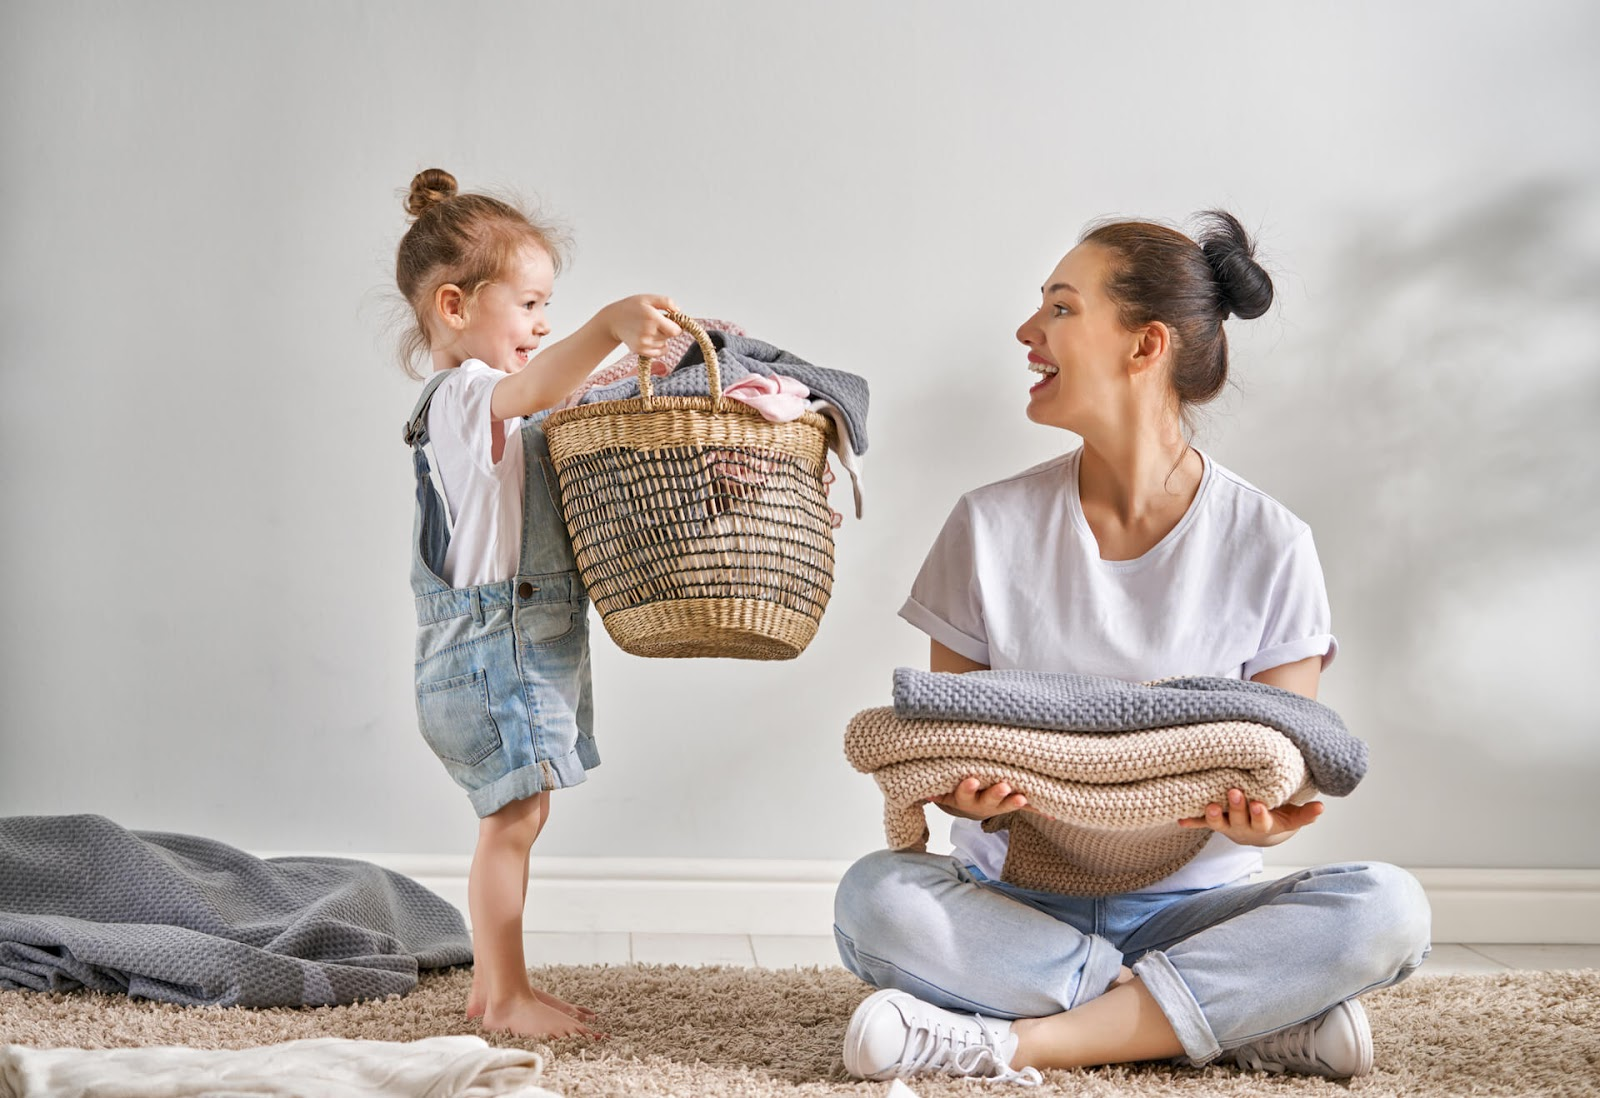 Mom enjoying laundry with her daughter